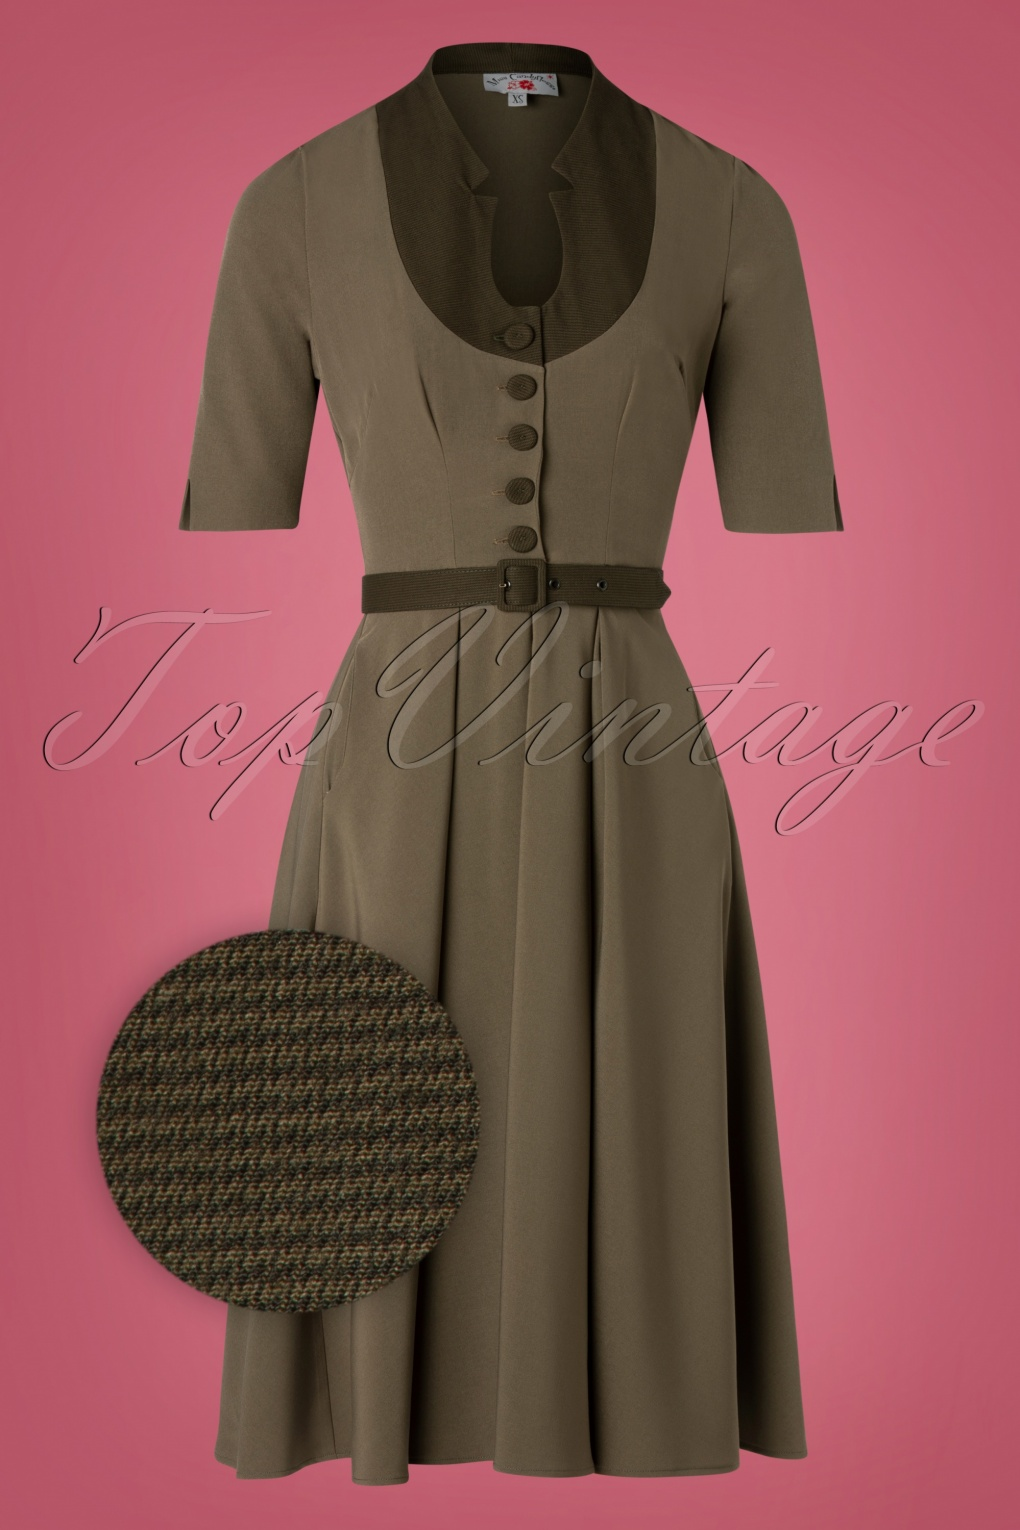 Swing Dance Dresses | Lindy Hop Dresses & Clothing 40s Judith Houndstooth Swing Dress in Khaki Green £95.01 AT vintagedancer.com